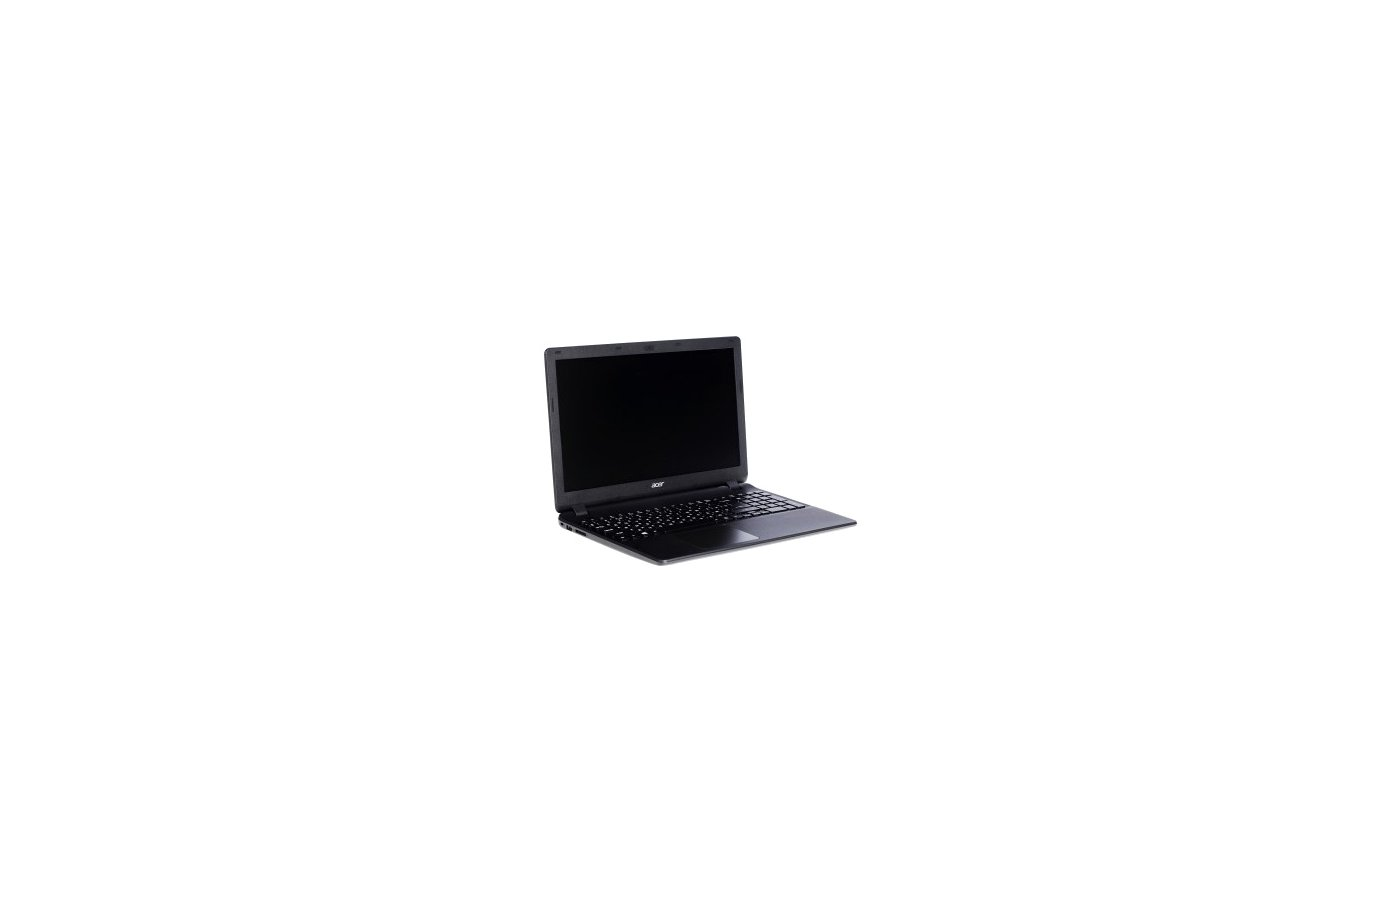 Ноутбук Acer Extensa 2508-C6BE /NX.EF1ER.020/ intel N2840/2Gb/500Gb/DVDRW/15.6/Win8